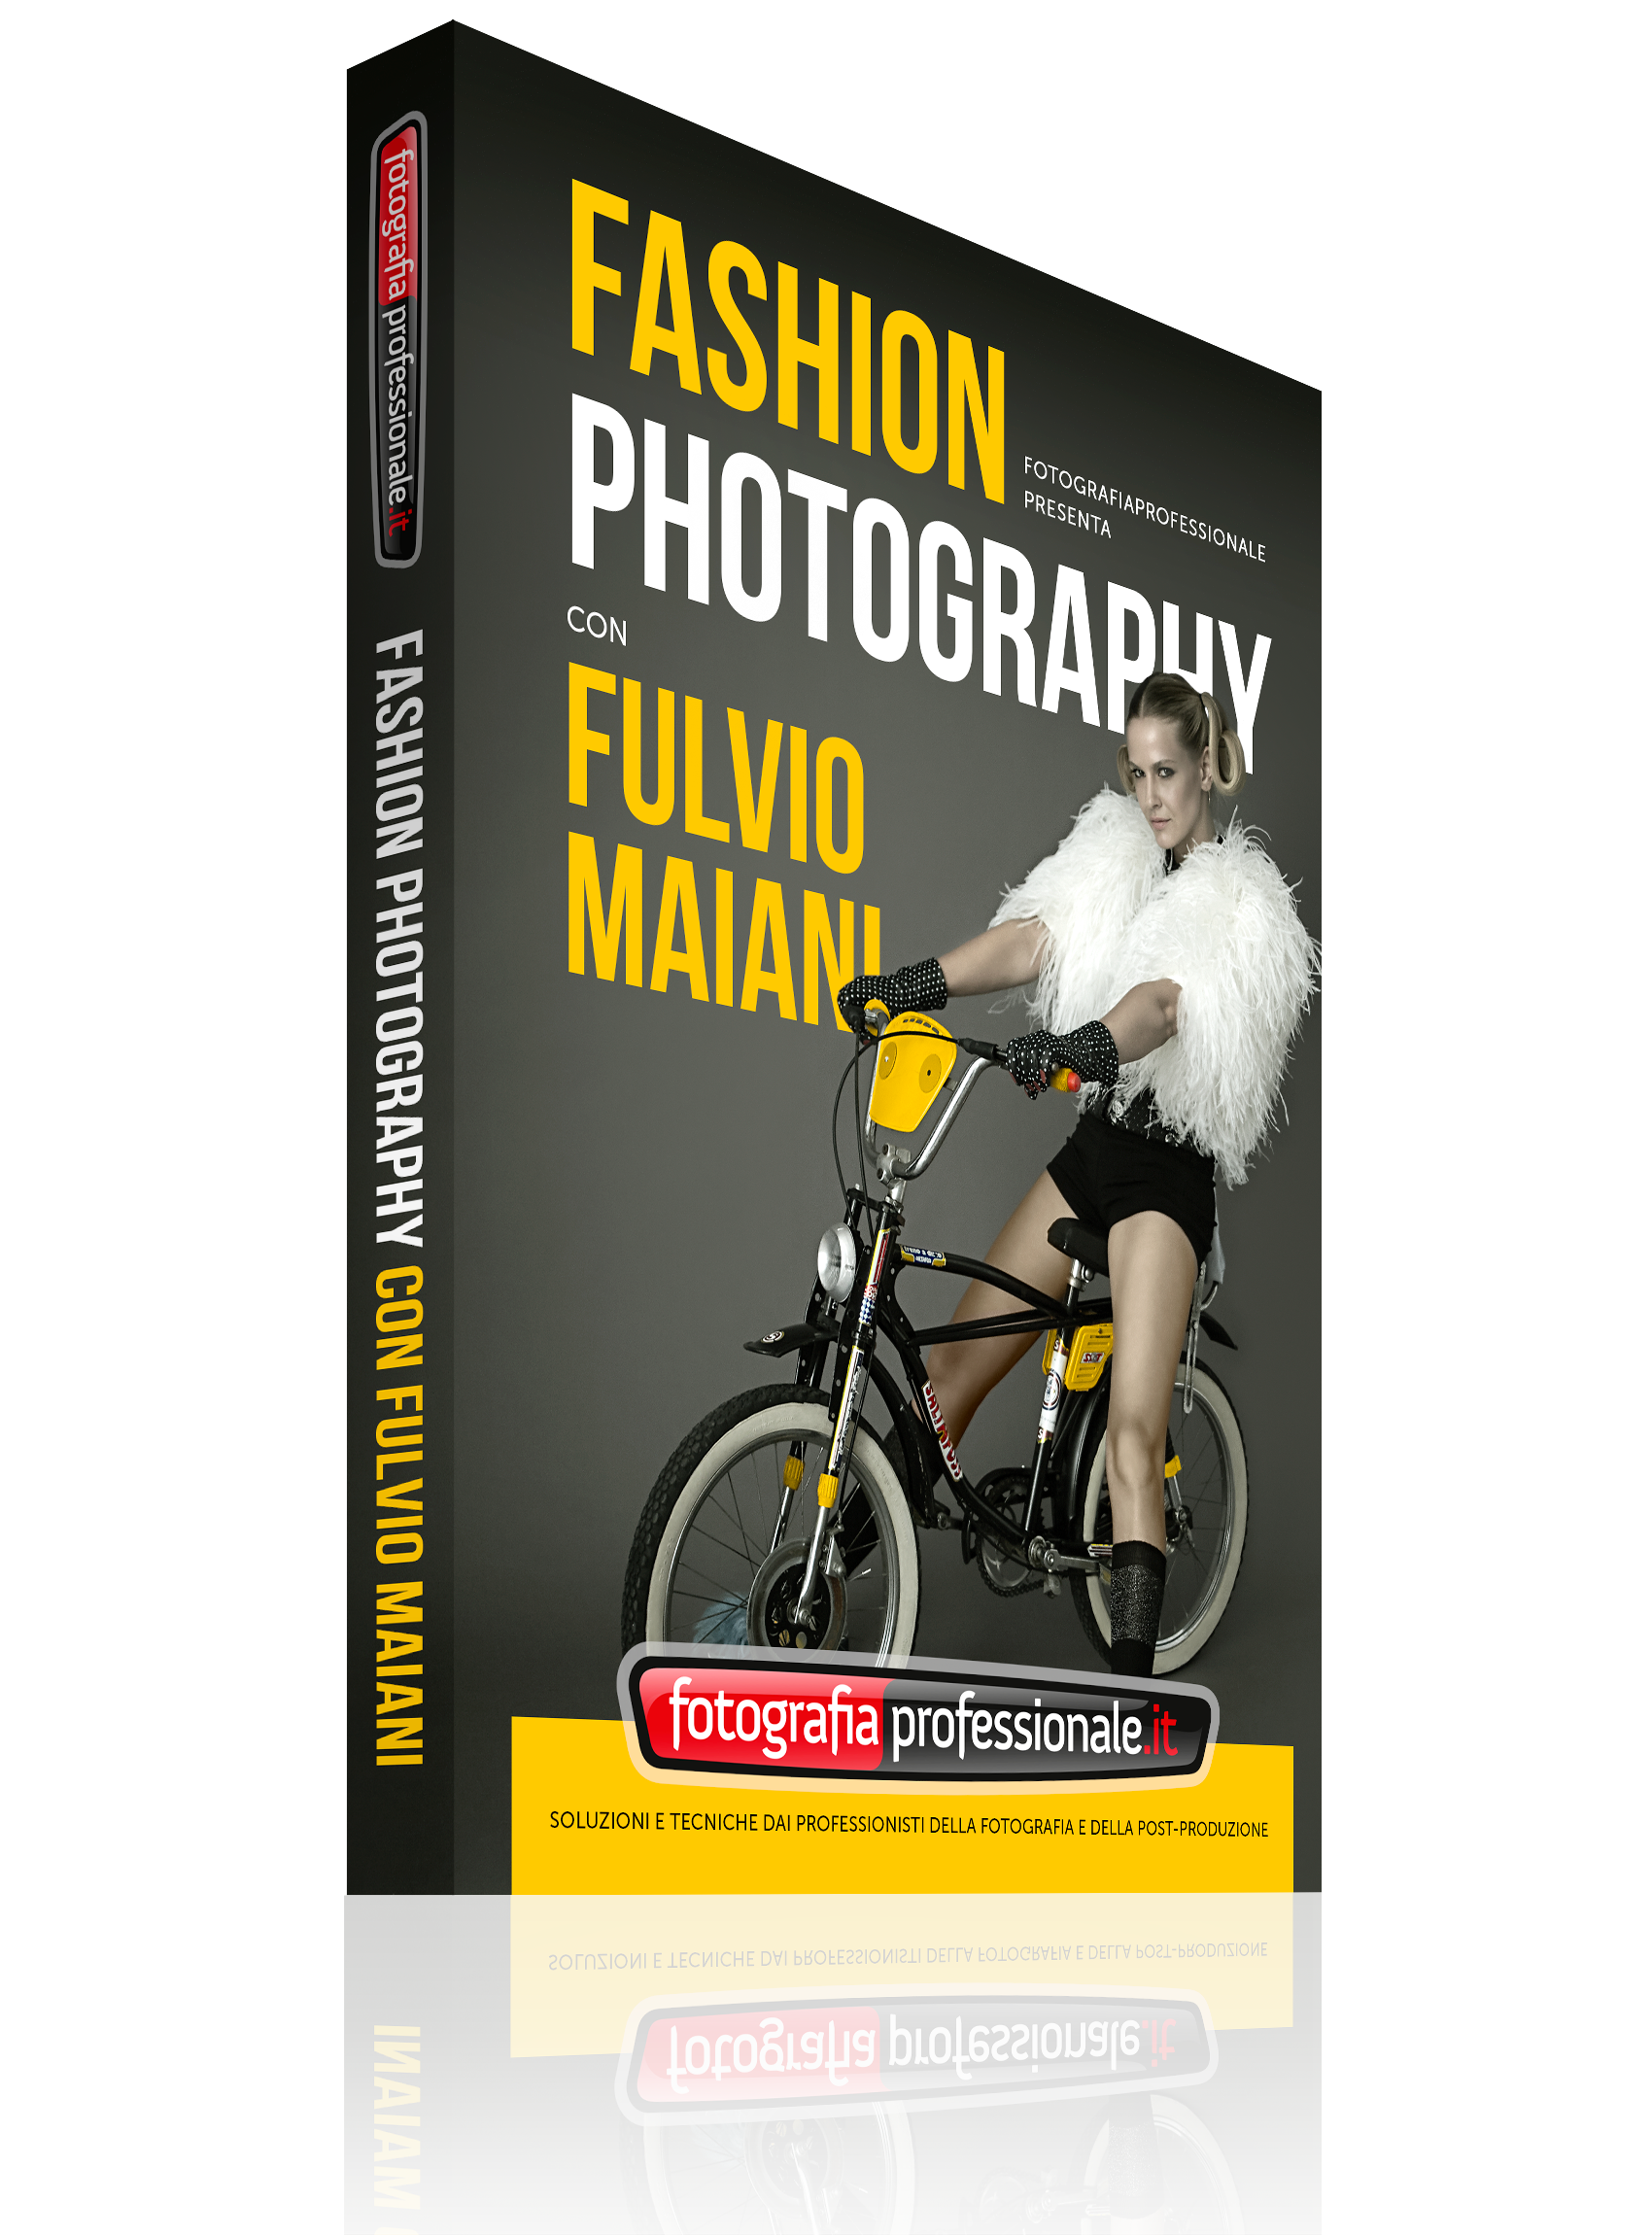 Fashion Photography con Fulvio Maiani